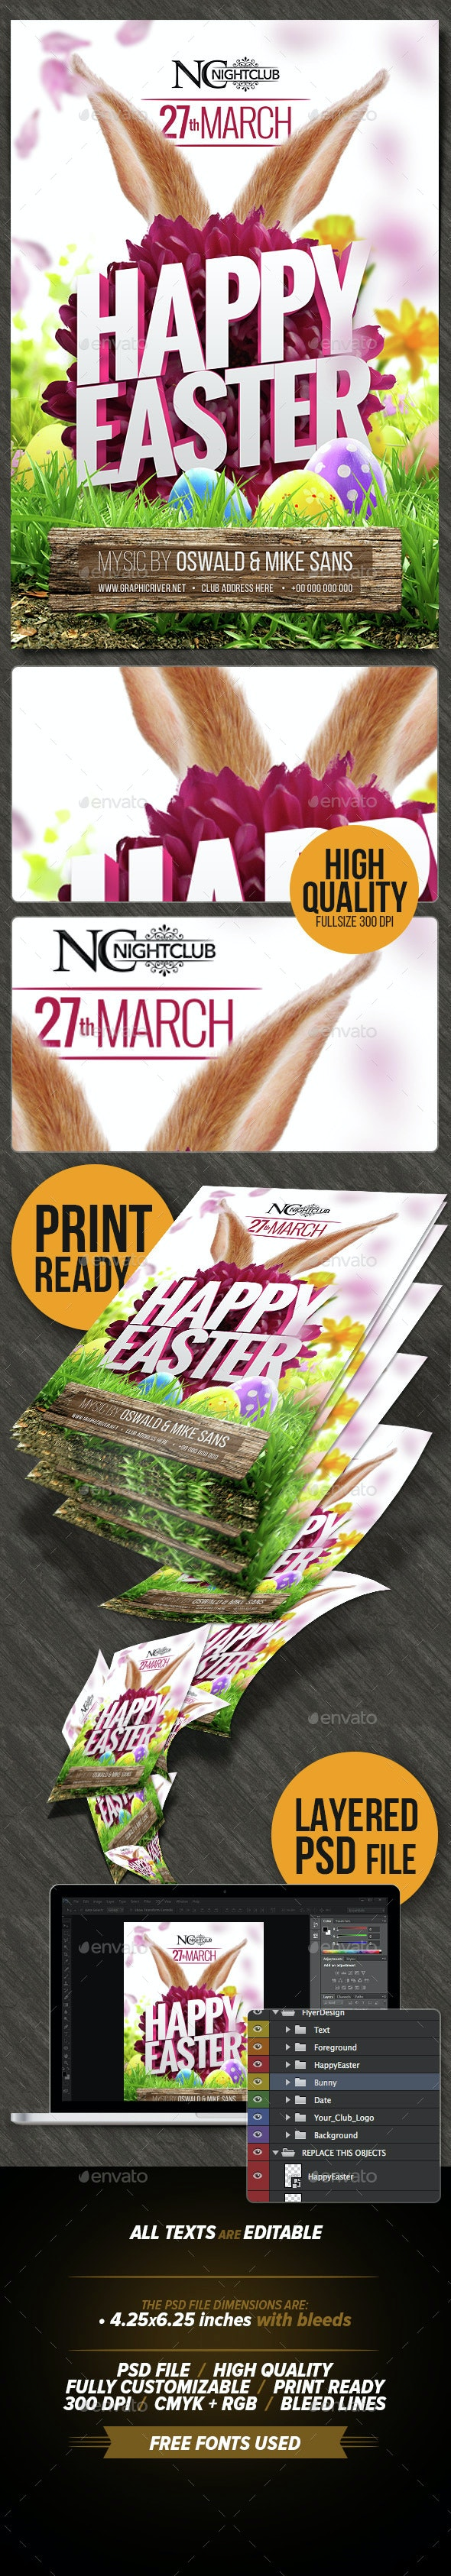 Happy Easter Party Flyer Template  - Clubs & Parties Events